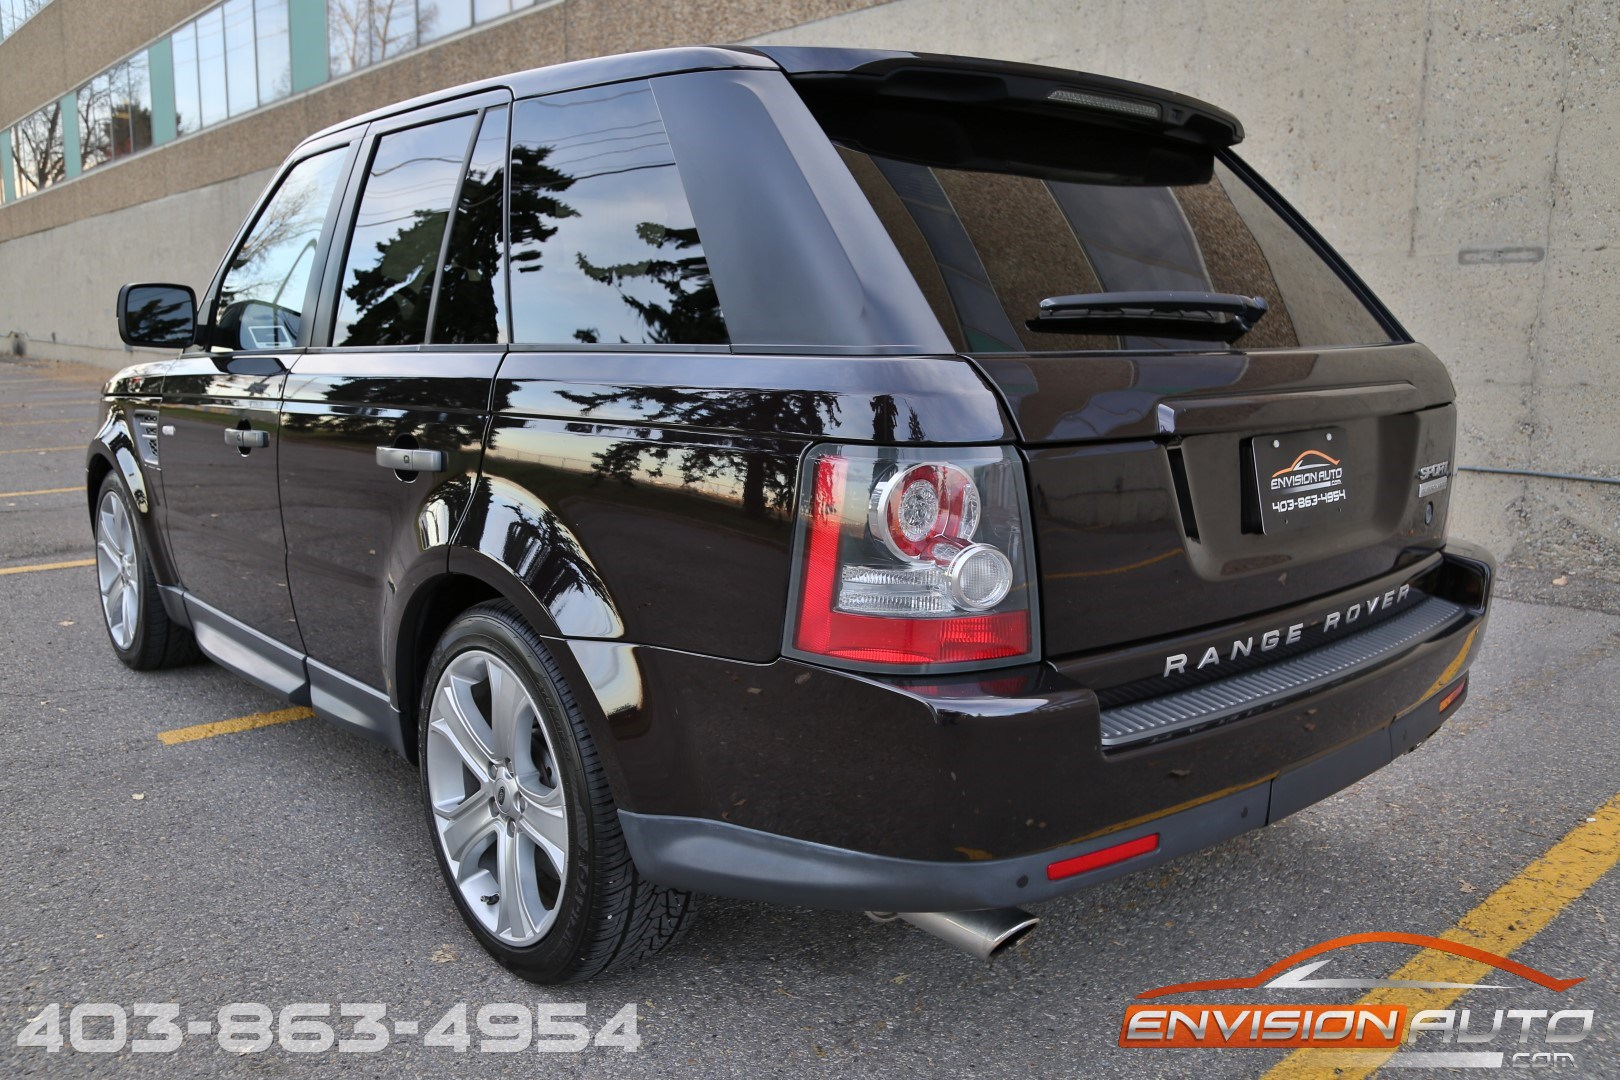 2010 Land Rover Range Rover Sport Supercharged - Envision Auto